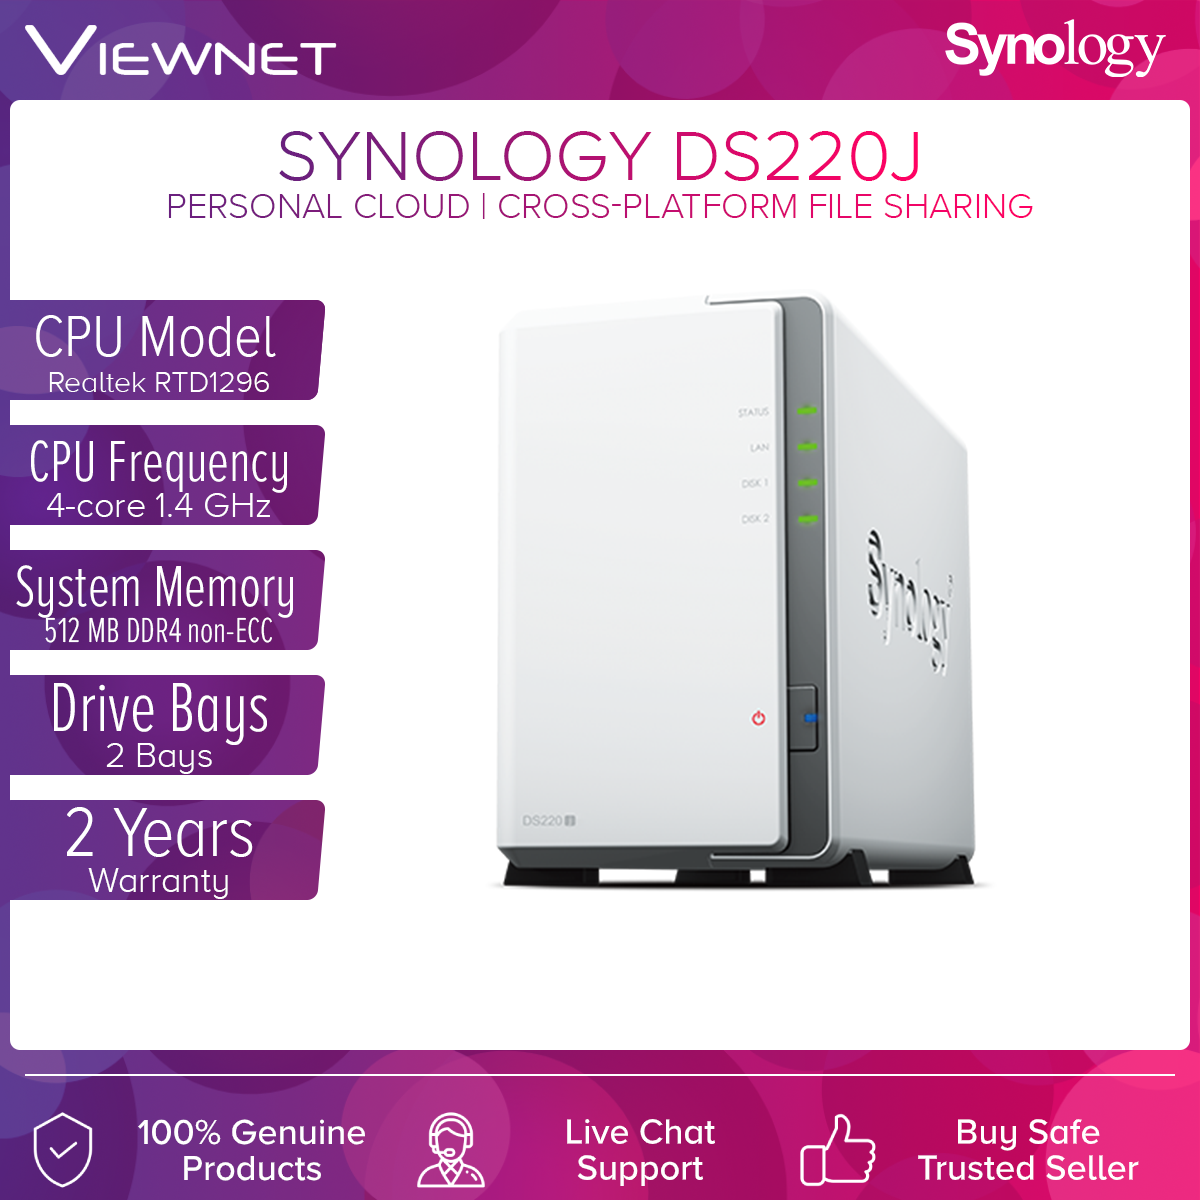 Synology DS220j 2-Bays NAS DiskStation External Hard Drive Entry-level Personal Cloud Solution for Data Sharing and Backup